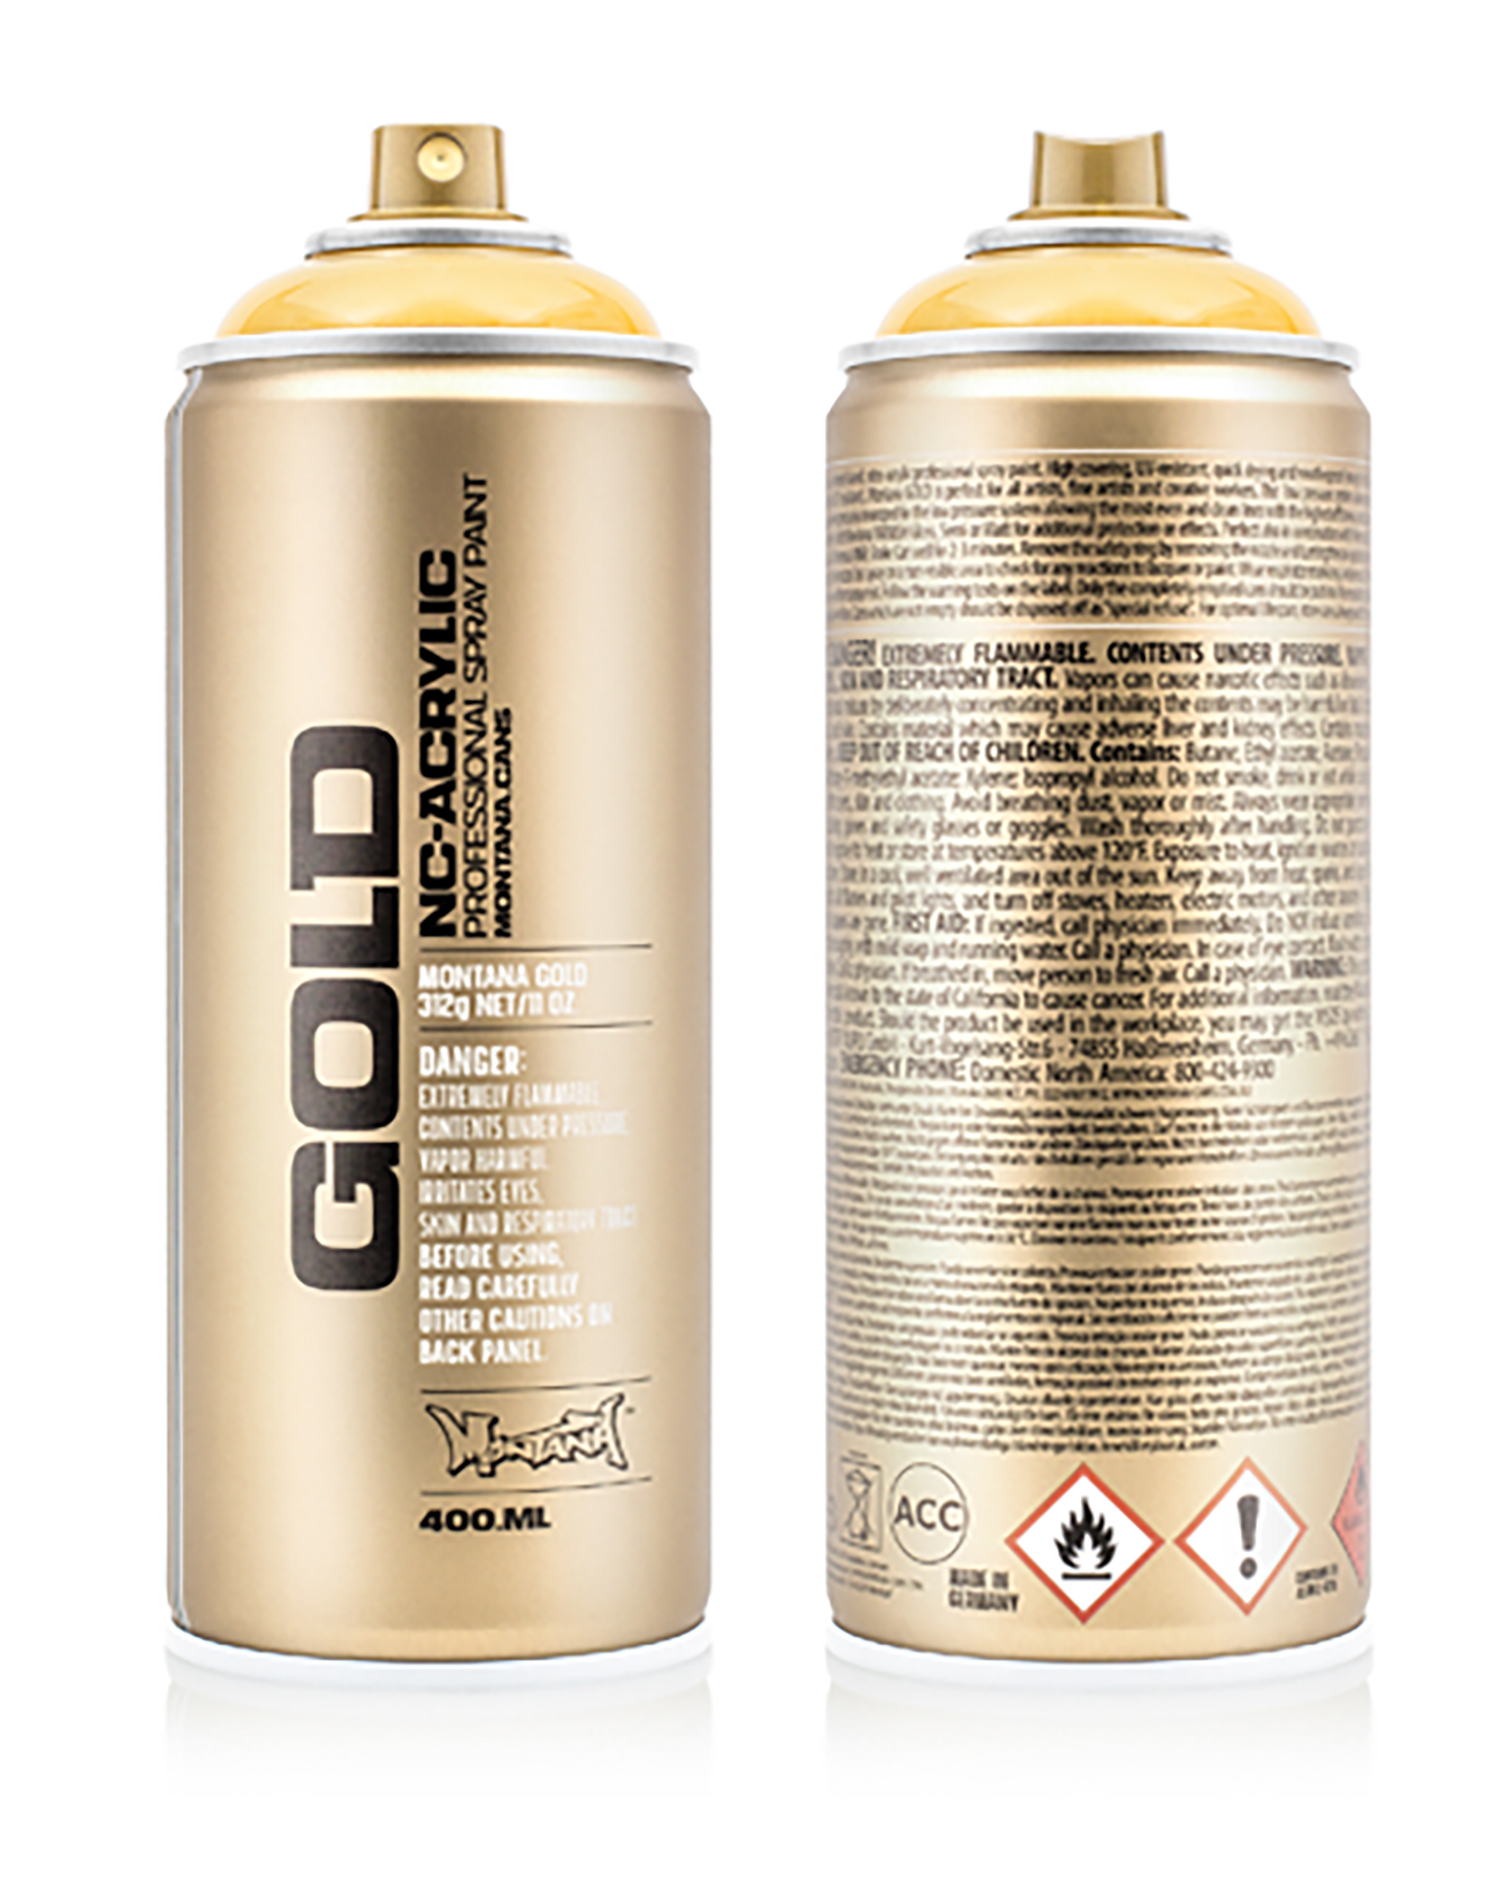 MONTANA-GOLD-SPRAY-400ML-T1220